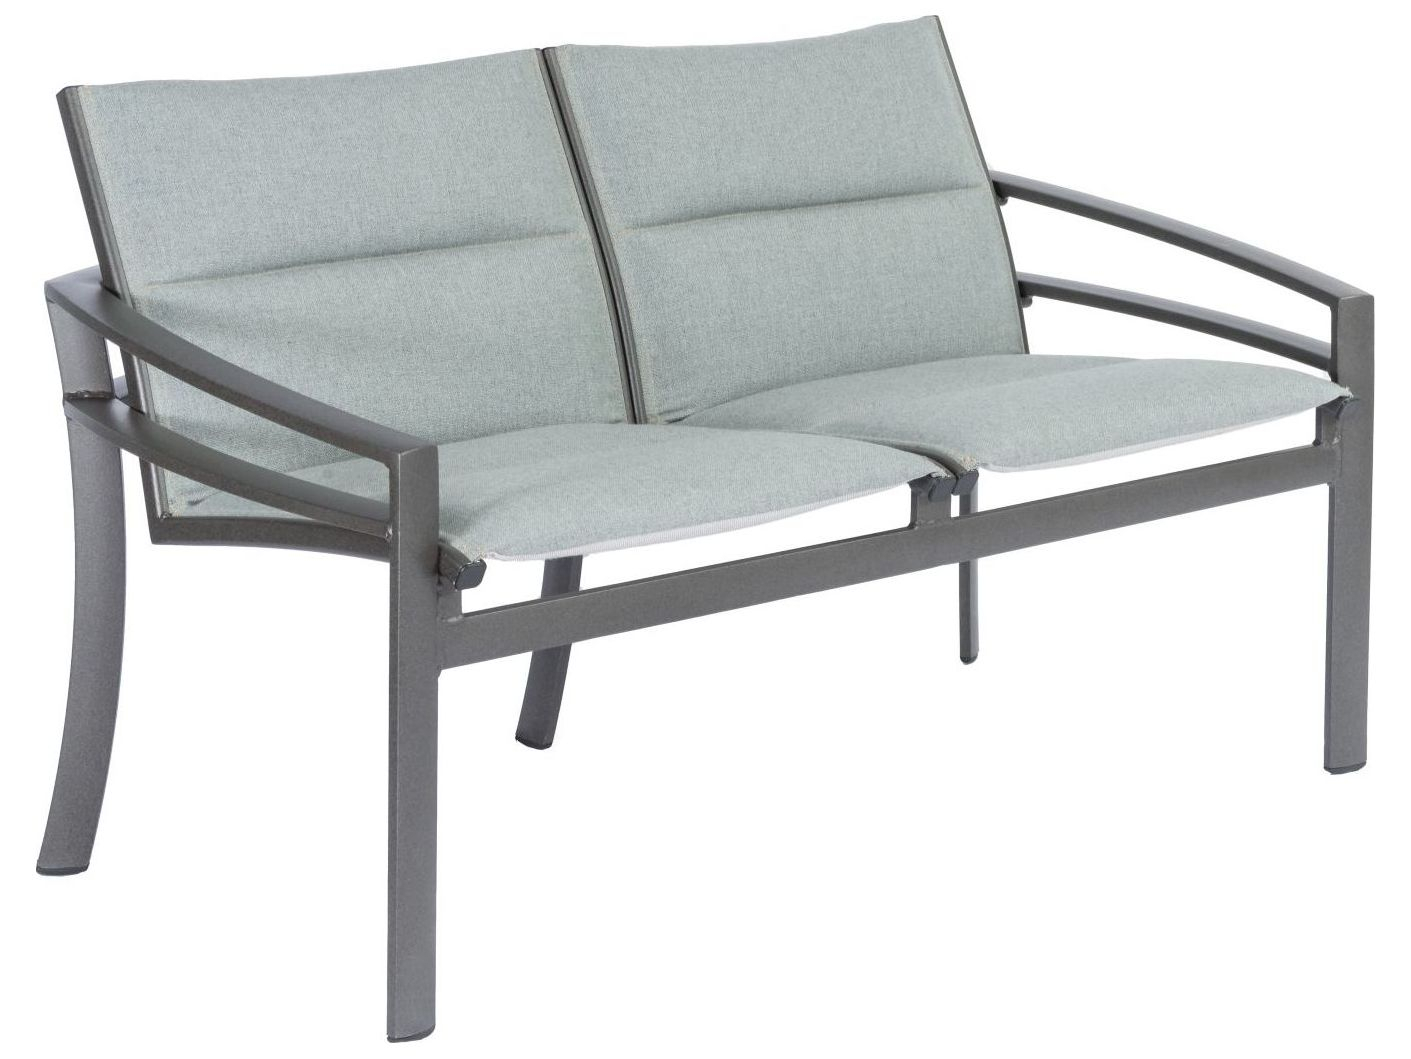 Tropitone Kor Padded Sling Aluminum Loveseat Pertaining To Padded Sling Double Glider Benches (View 25 of 25)